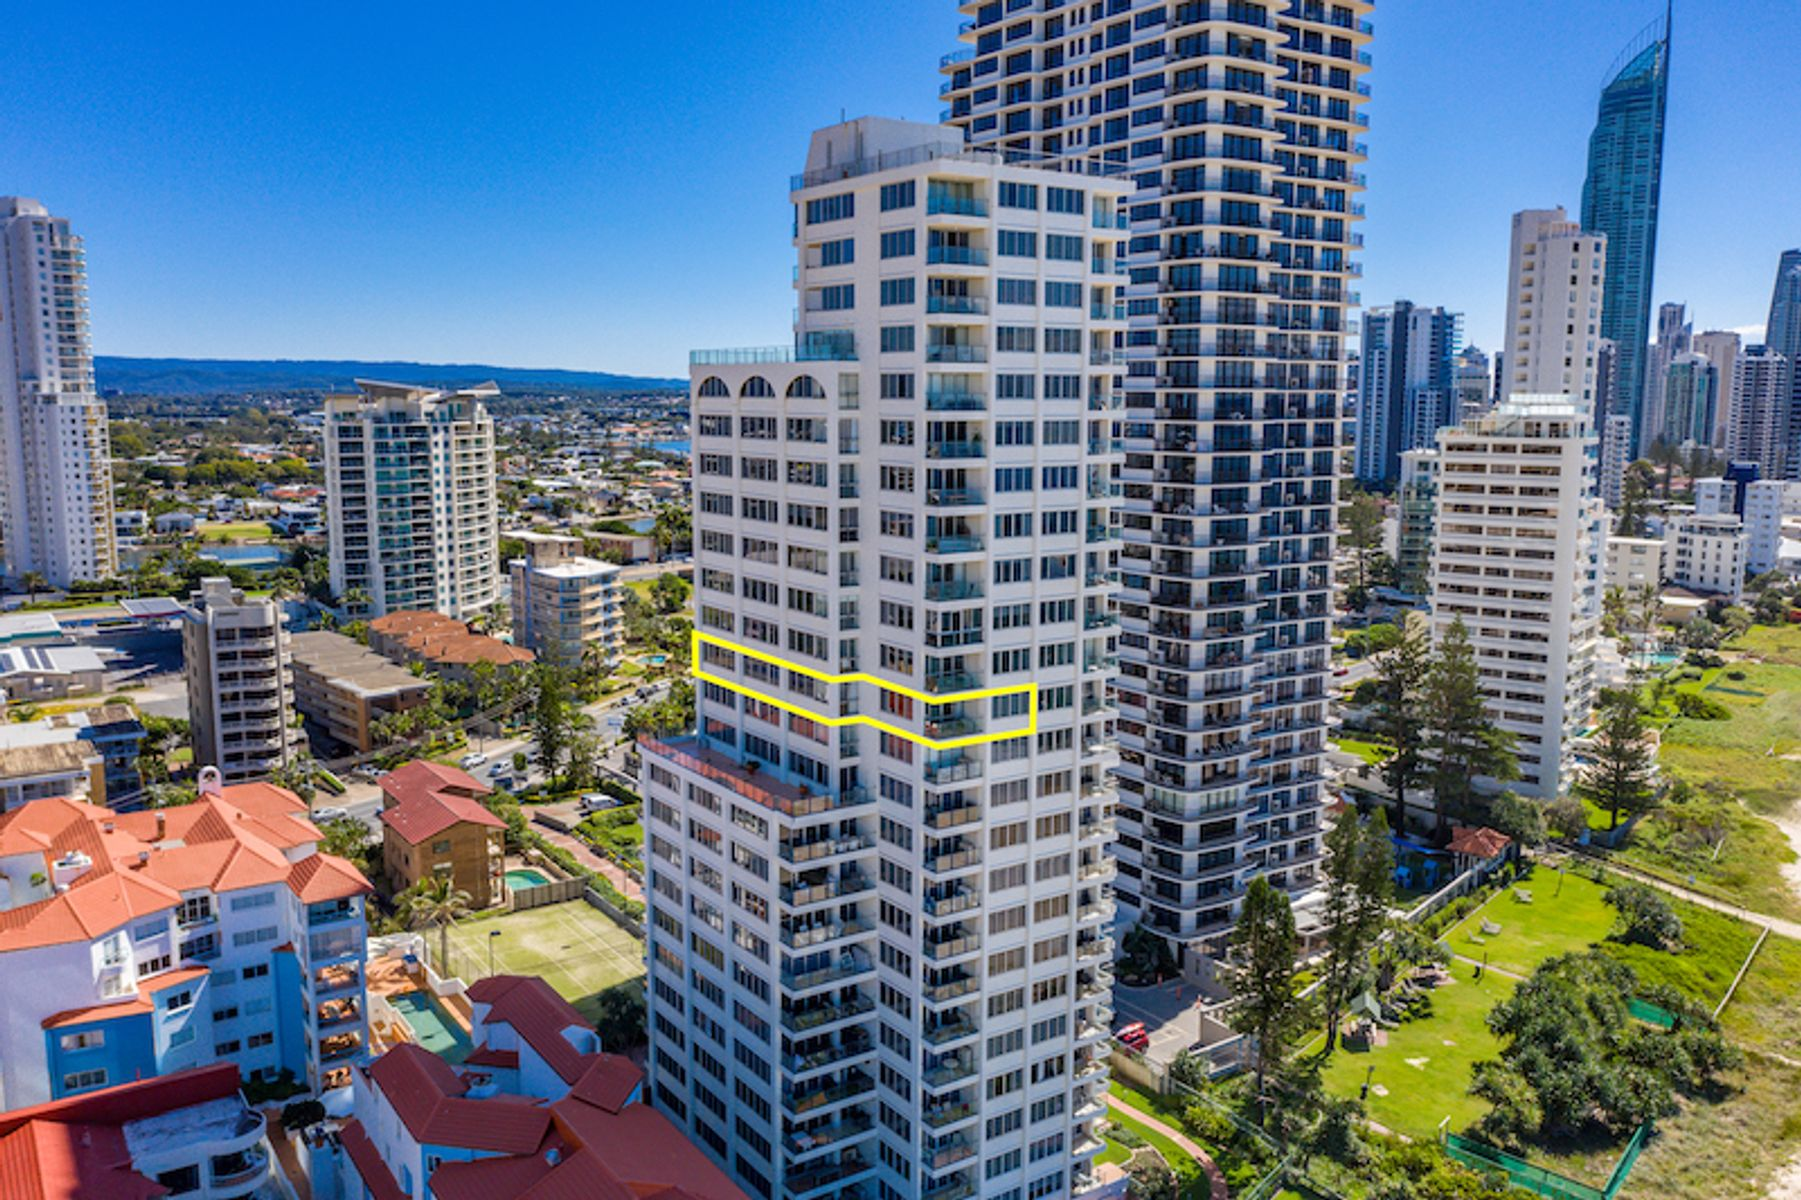 37/20 Old Burleigh Road, Surfers Paradise, QLD 4217